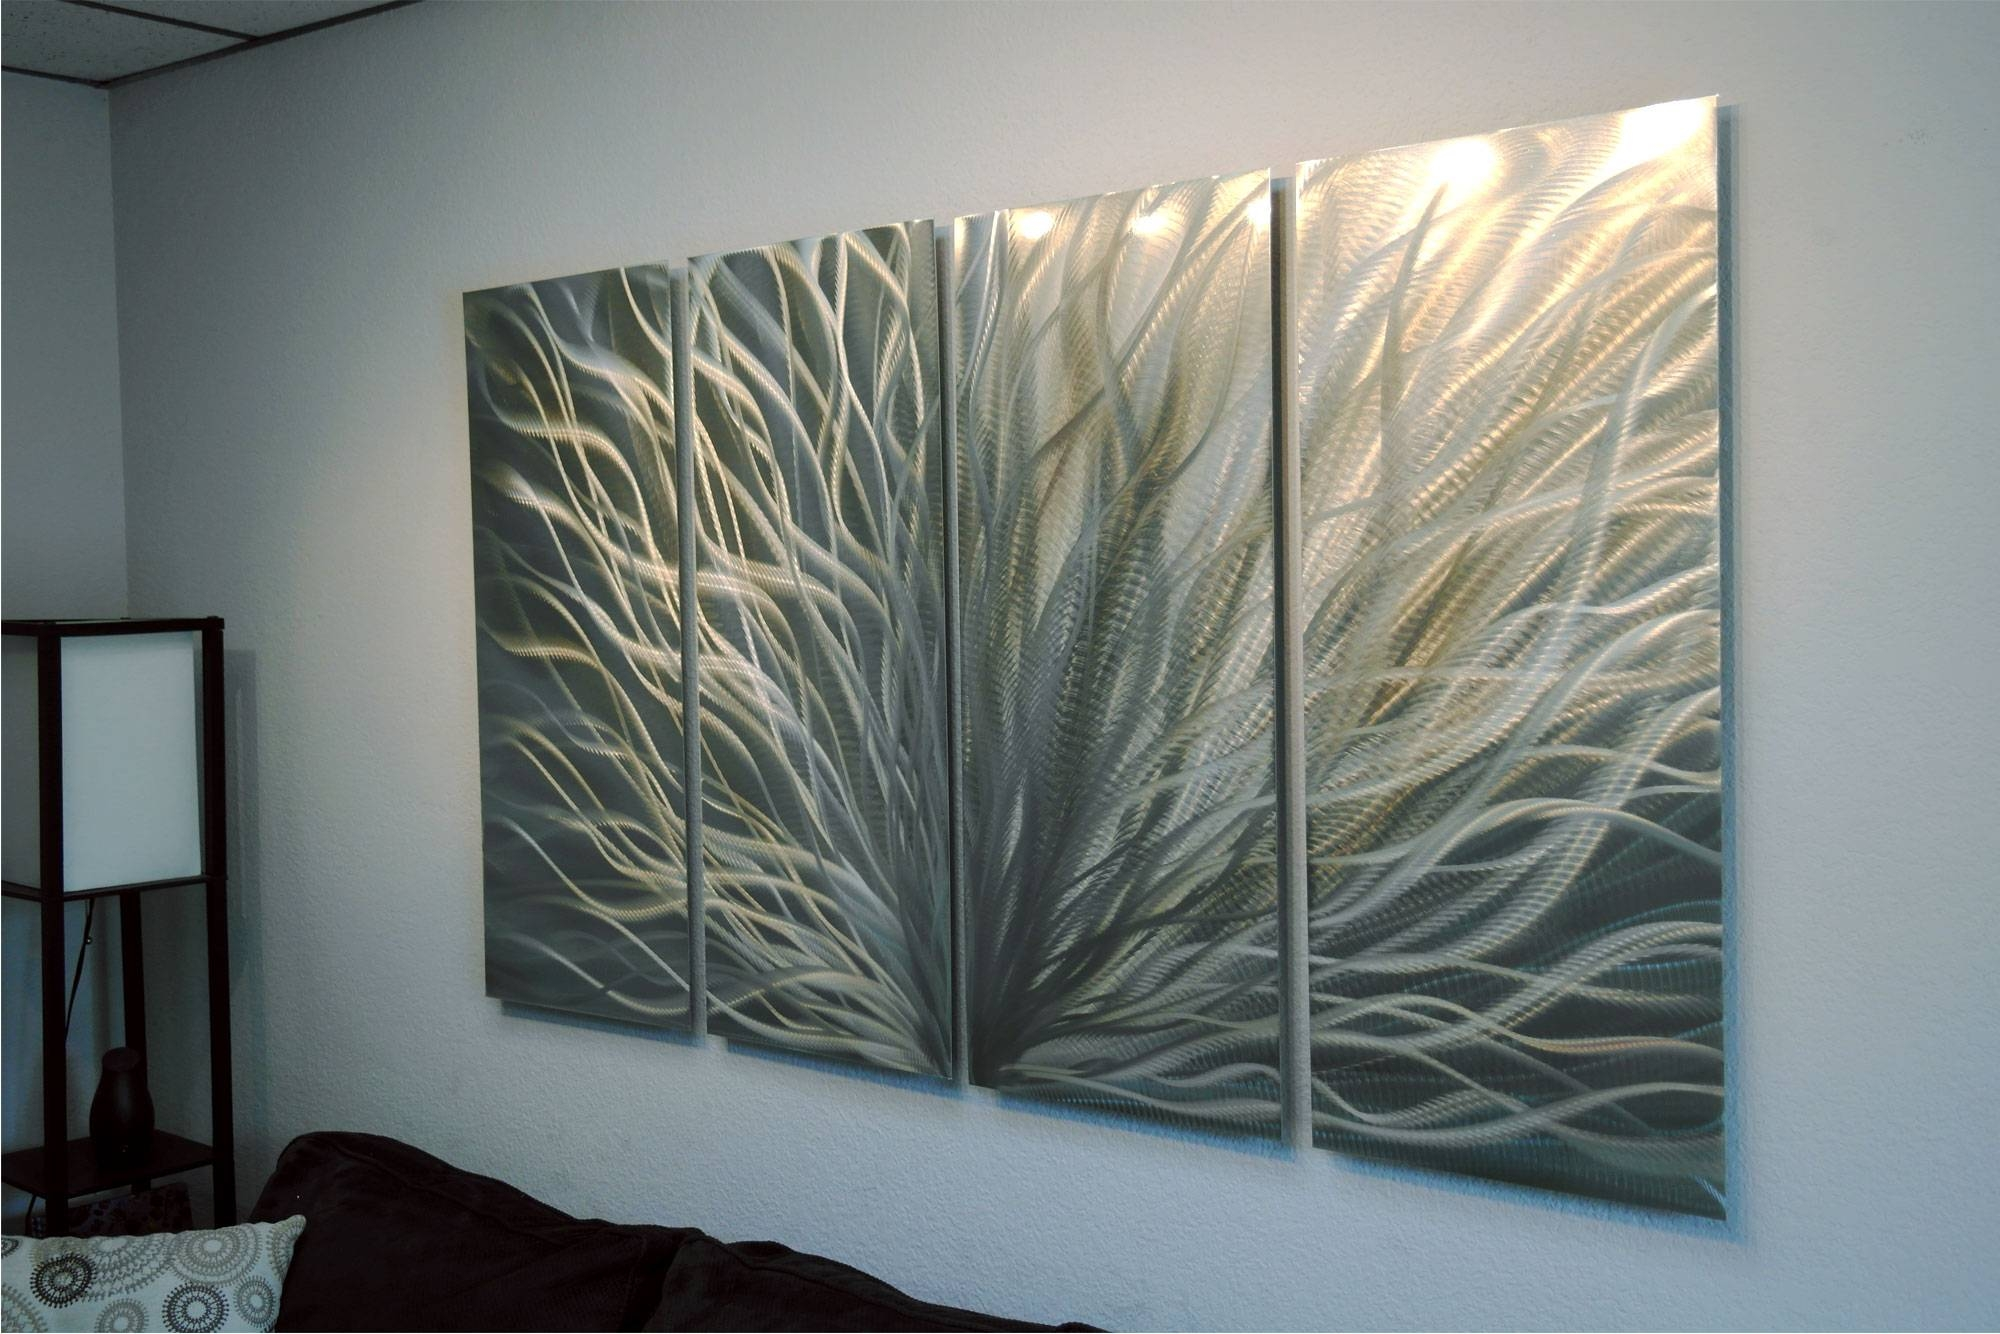 Radiance Silver And Gold 36X63 – Abstract Metal Wall Art In Most Up To Date Silver And Gold Wall Art (View 13 of 15)